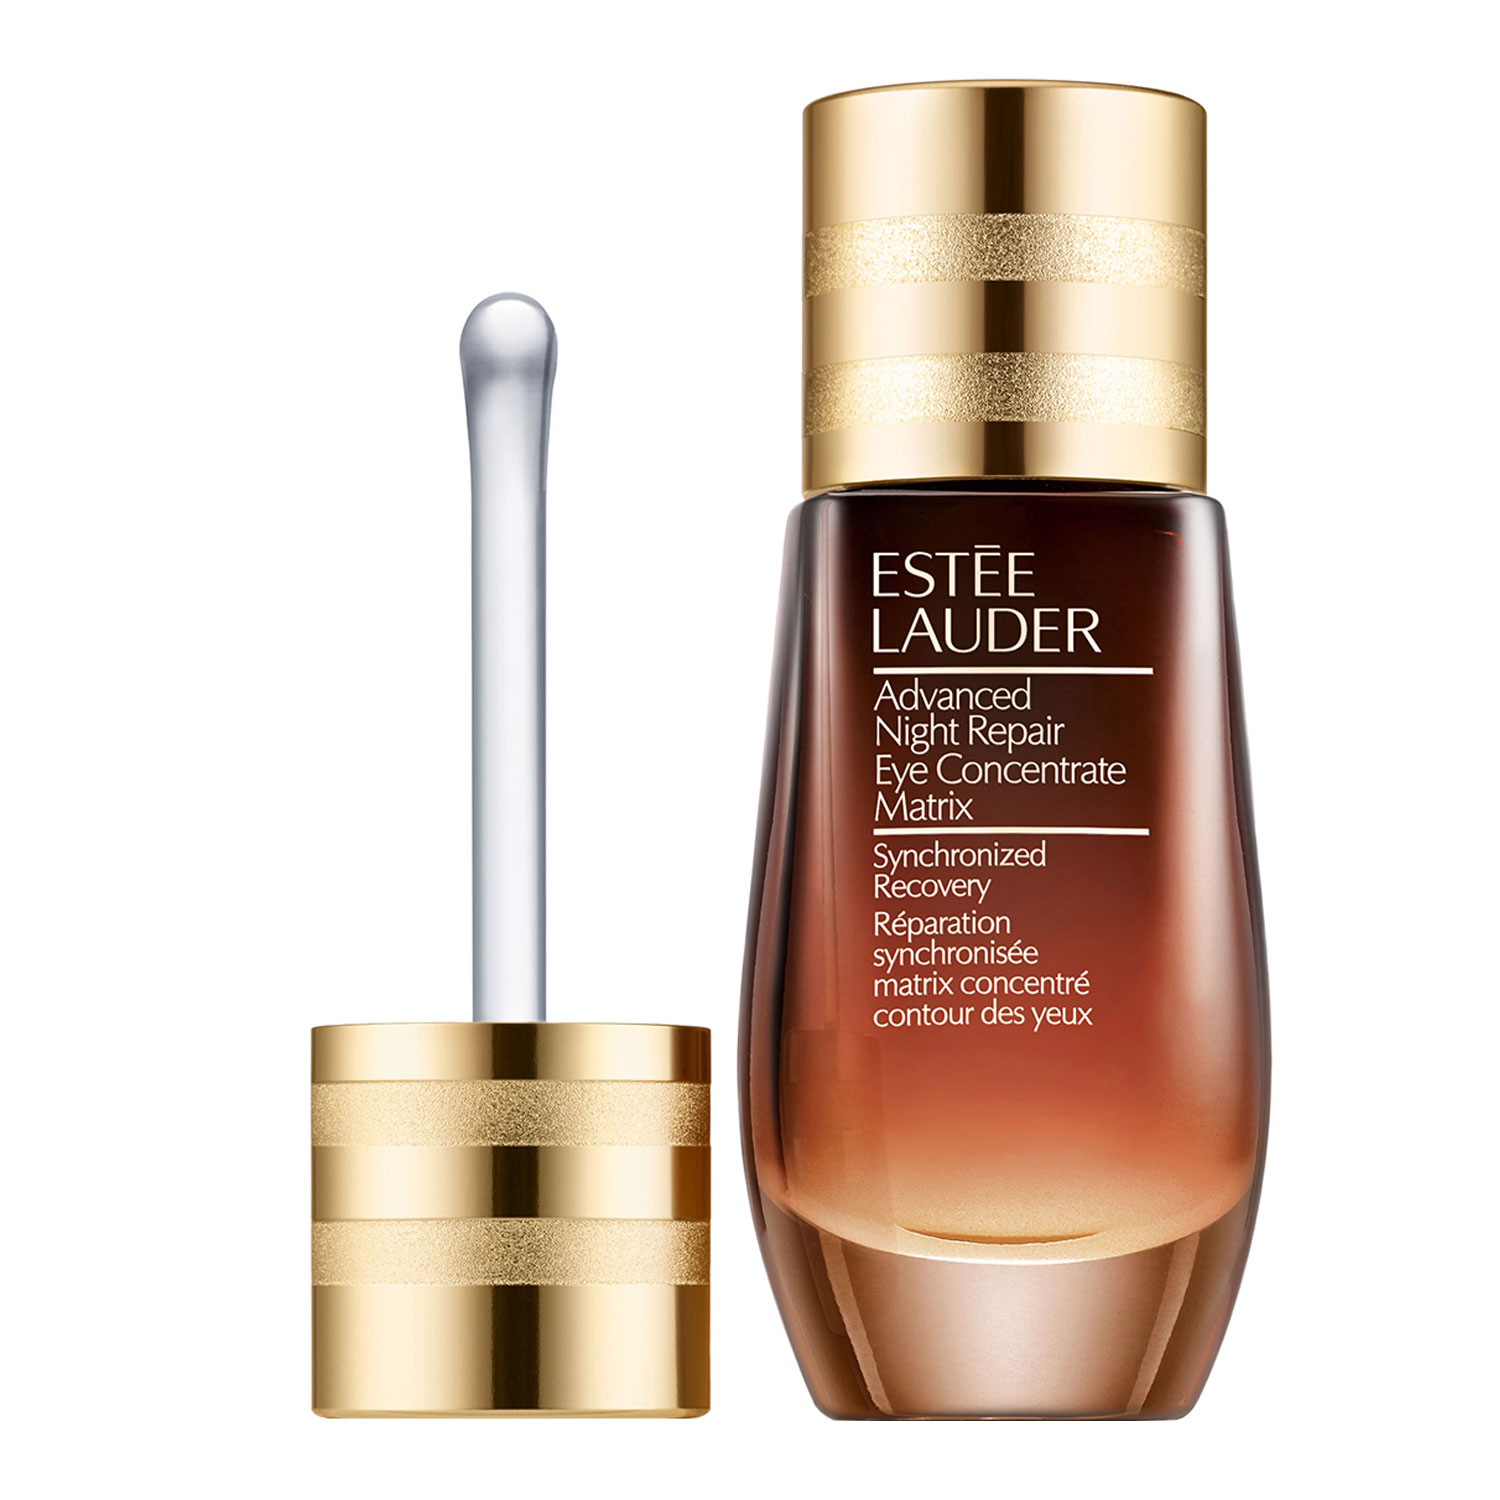 Advanced Night Repair - Eye Concentrate Matrix